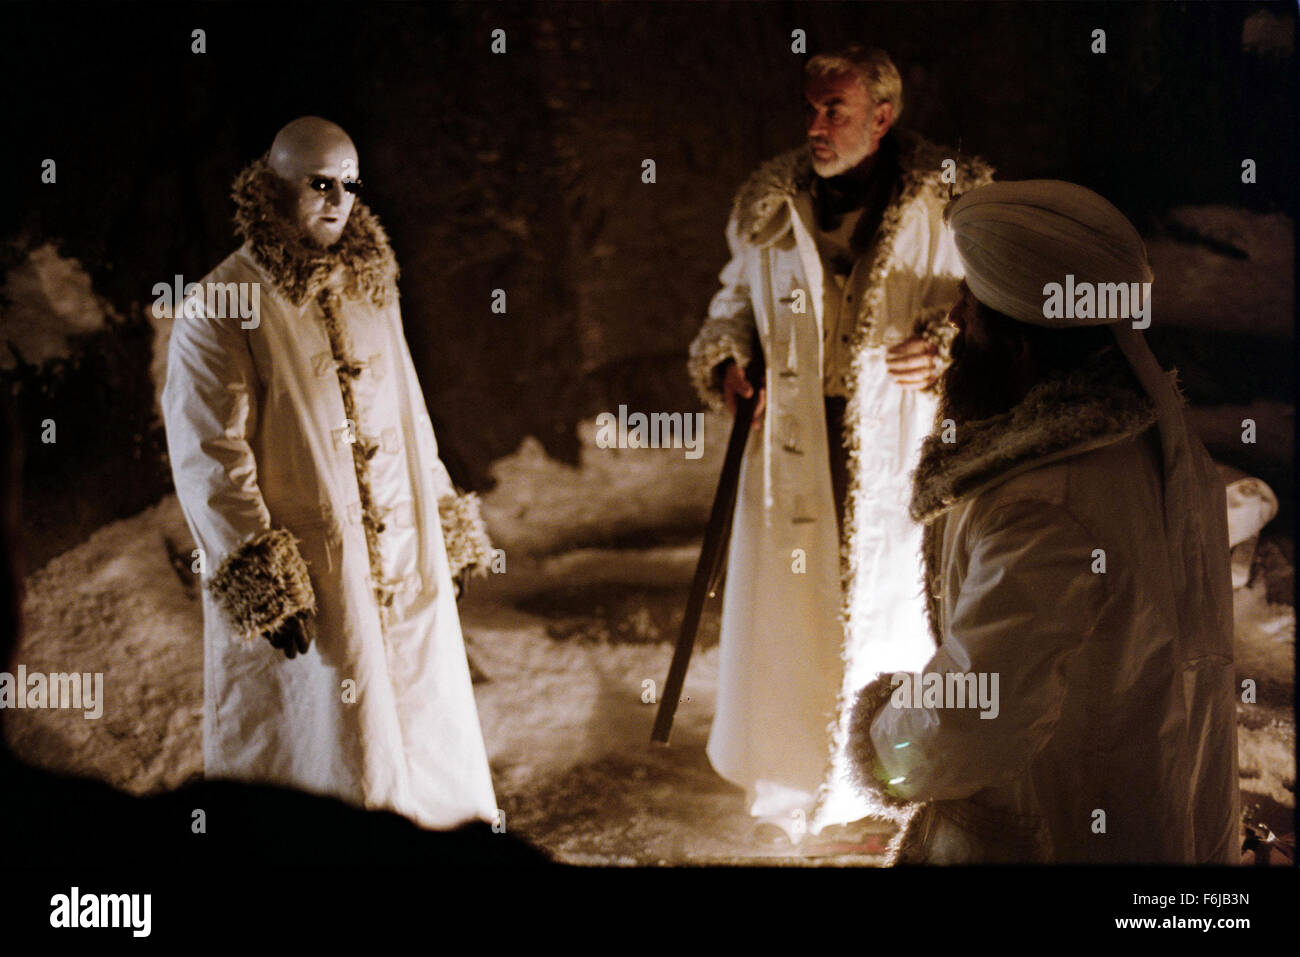 Jul 11, 2003; Calgary, AB, CANADA; TONY CURRAN and SEAN CONNERY star as Rodney Skinner (The Invisible Man) and Allan Stock Photo